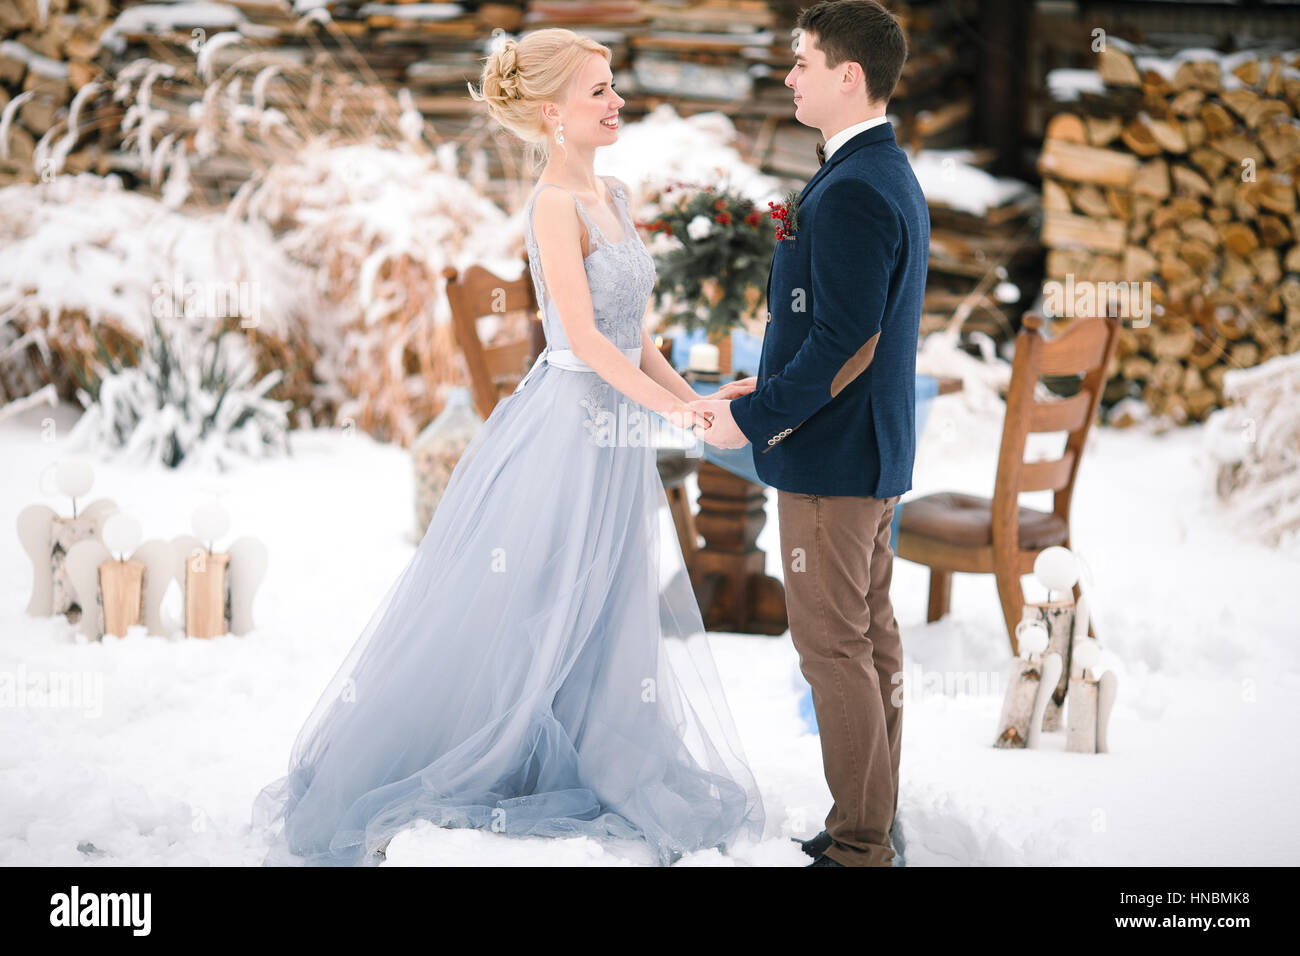 Winter Wedding Outdoor On Snow And Firewood Background